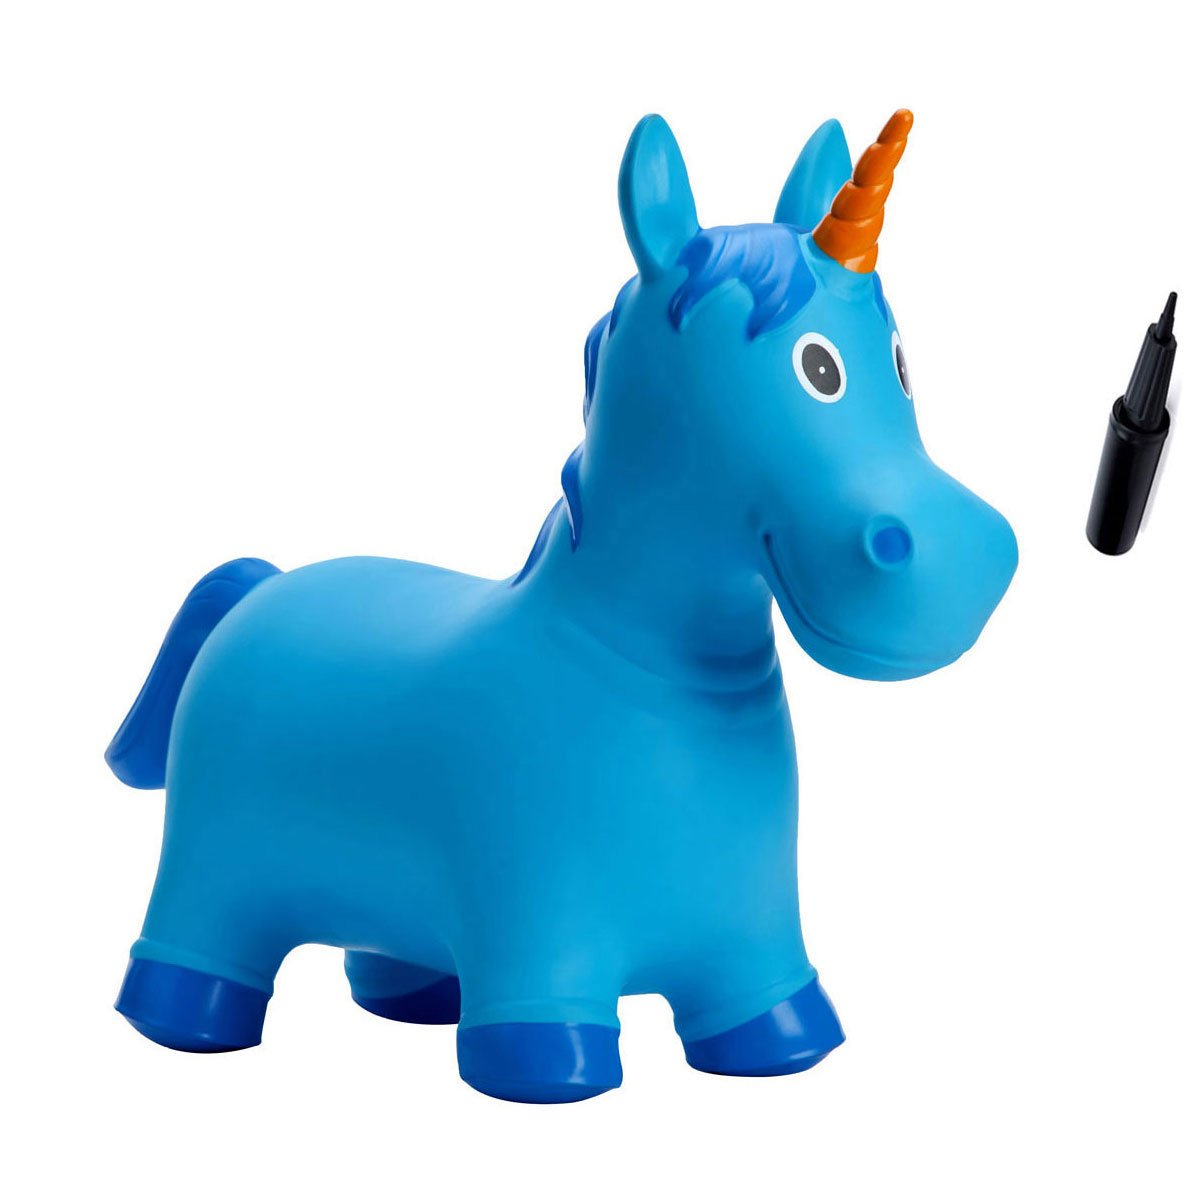 Babe Fairy Jumping Horse-Bouncy Horse Ride On Animals with Pump-Inflatable Unicorn Hopping Hopper For Girls and Boys-Bouncy Amials for Toddler-Best Lawn Game Toys(Sky Blue Unicorn)